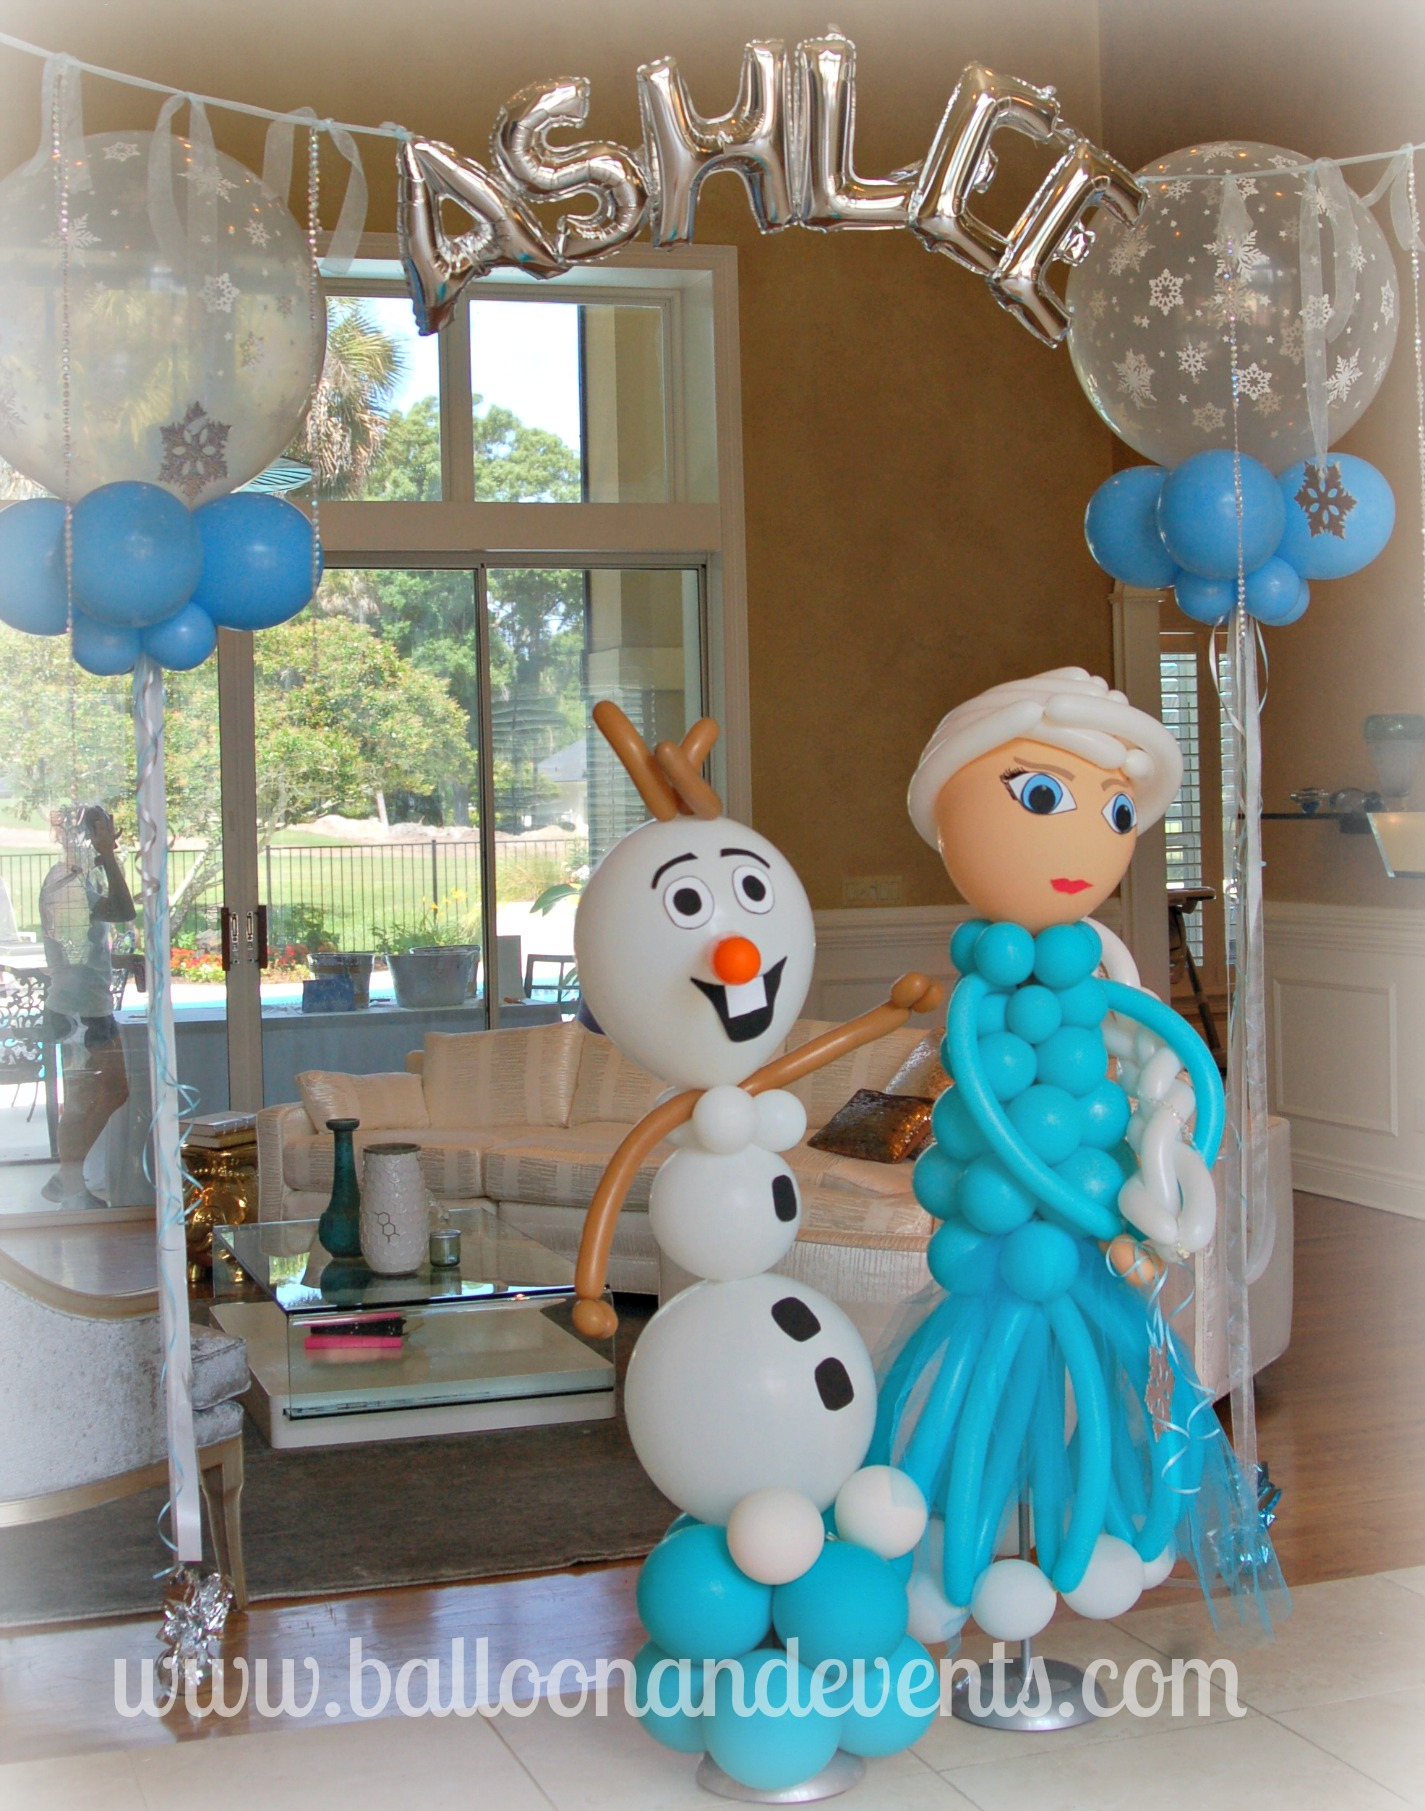 Decoracion con globos frozen decoracion de interiores for Adornos de casa decoracion